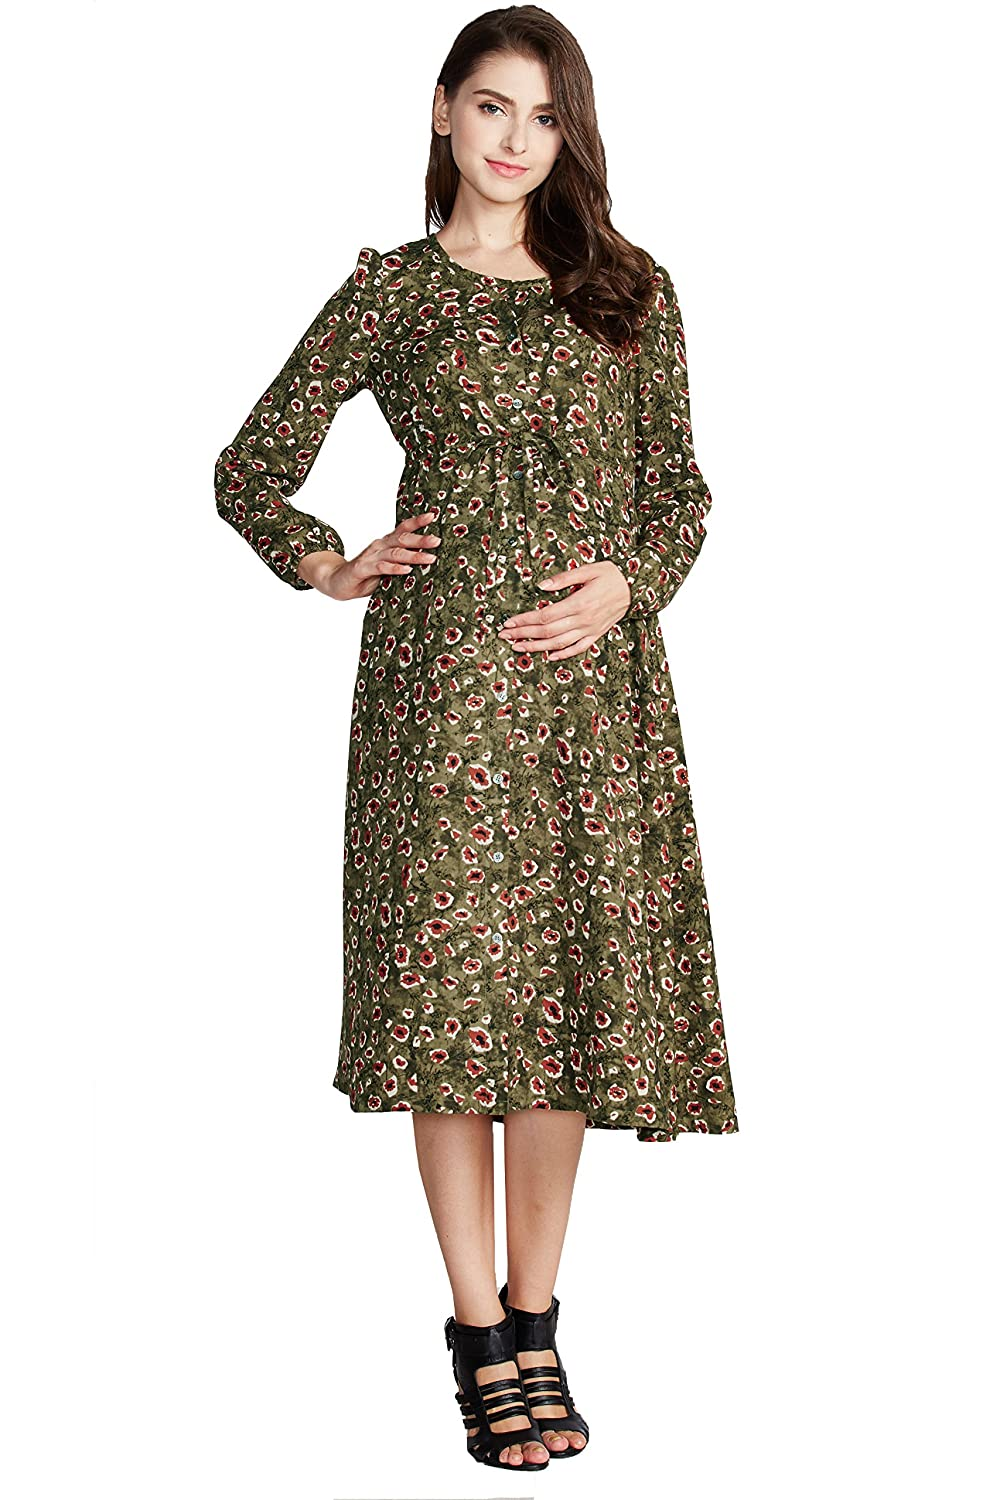 965248bd93a9b Sweet Mommy Maternity and Nursing Vintage Maxi Dress Floral Print Khaki, L  at Amazon Women's Clothing store: